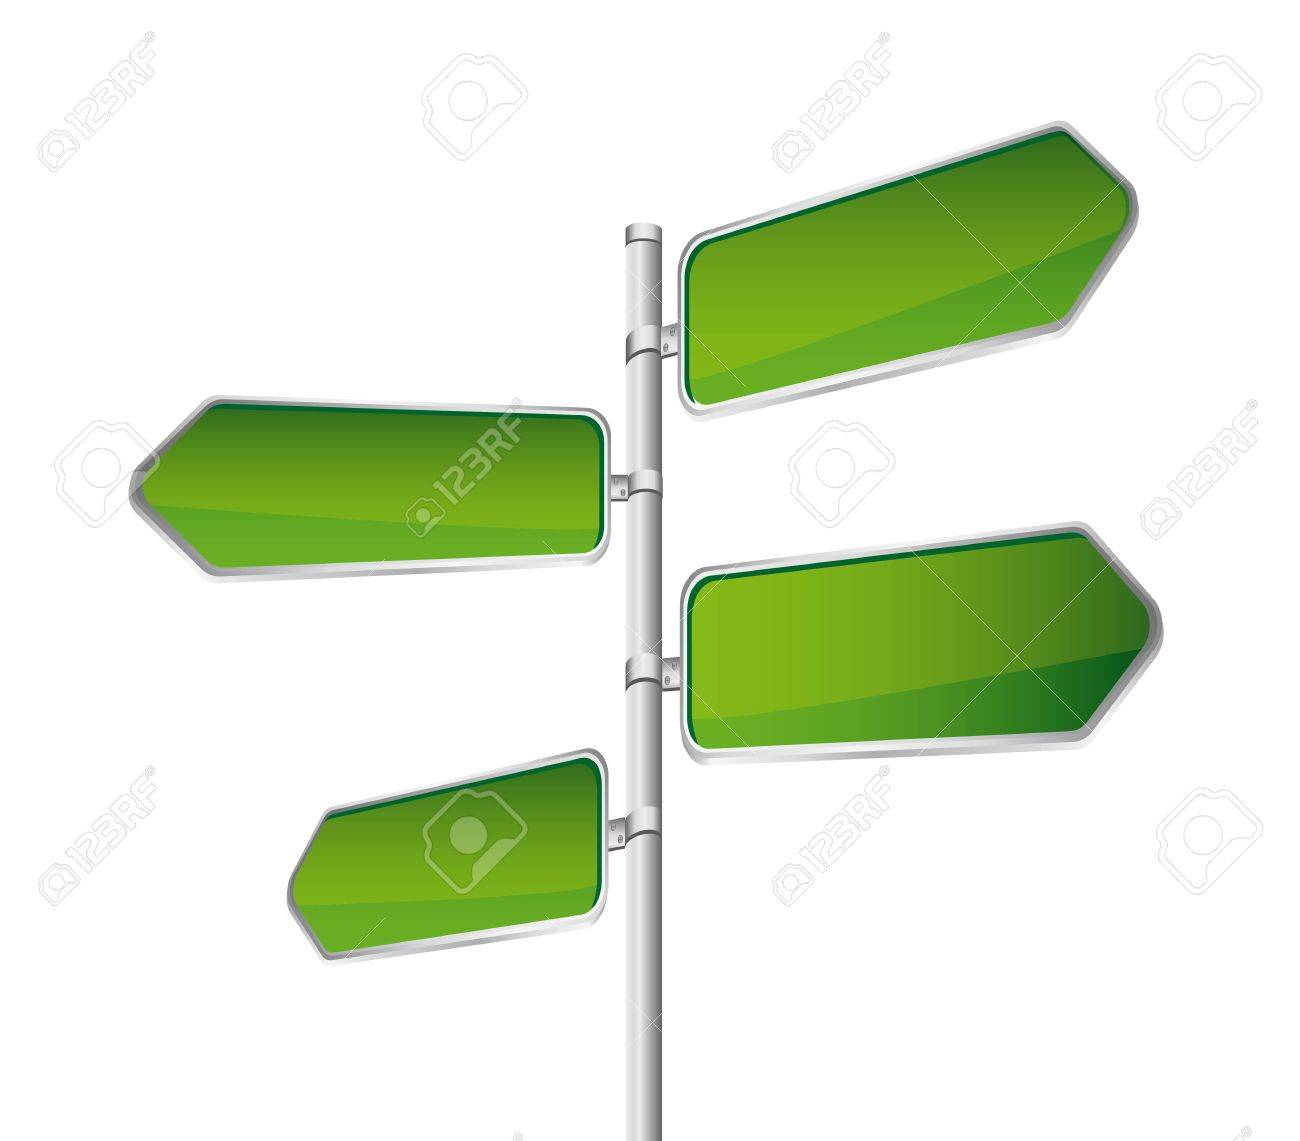 green direction road sign isolated over white backgroun. Stock Vector - 13882208